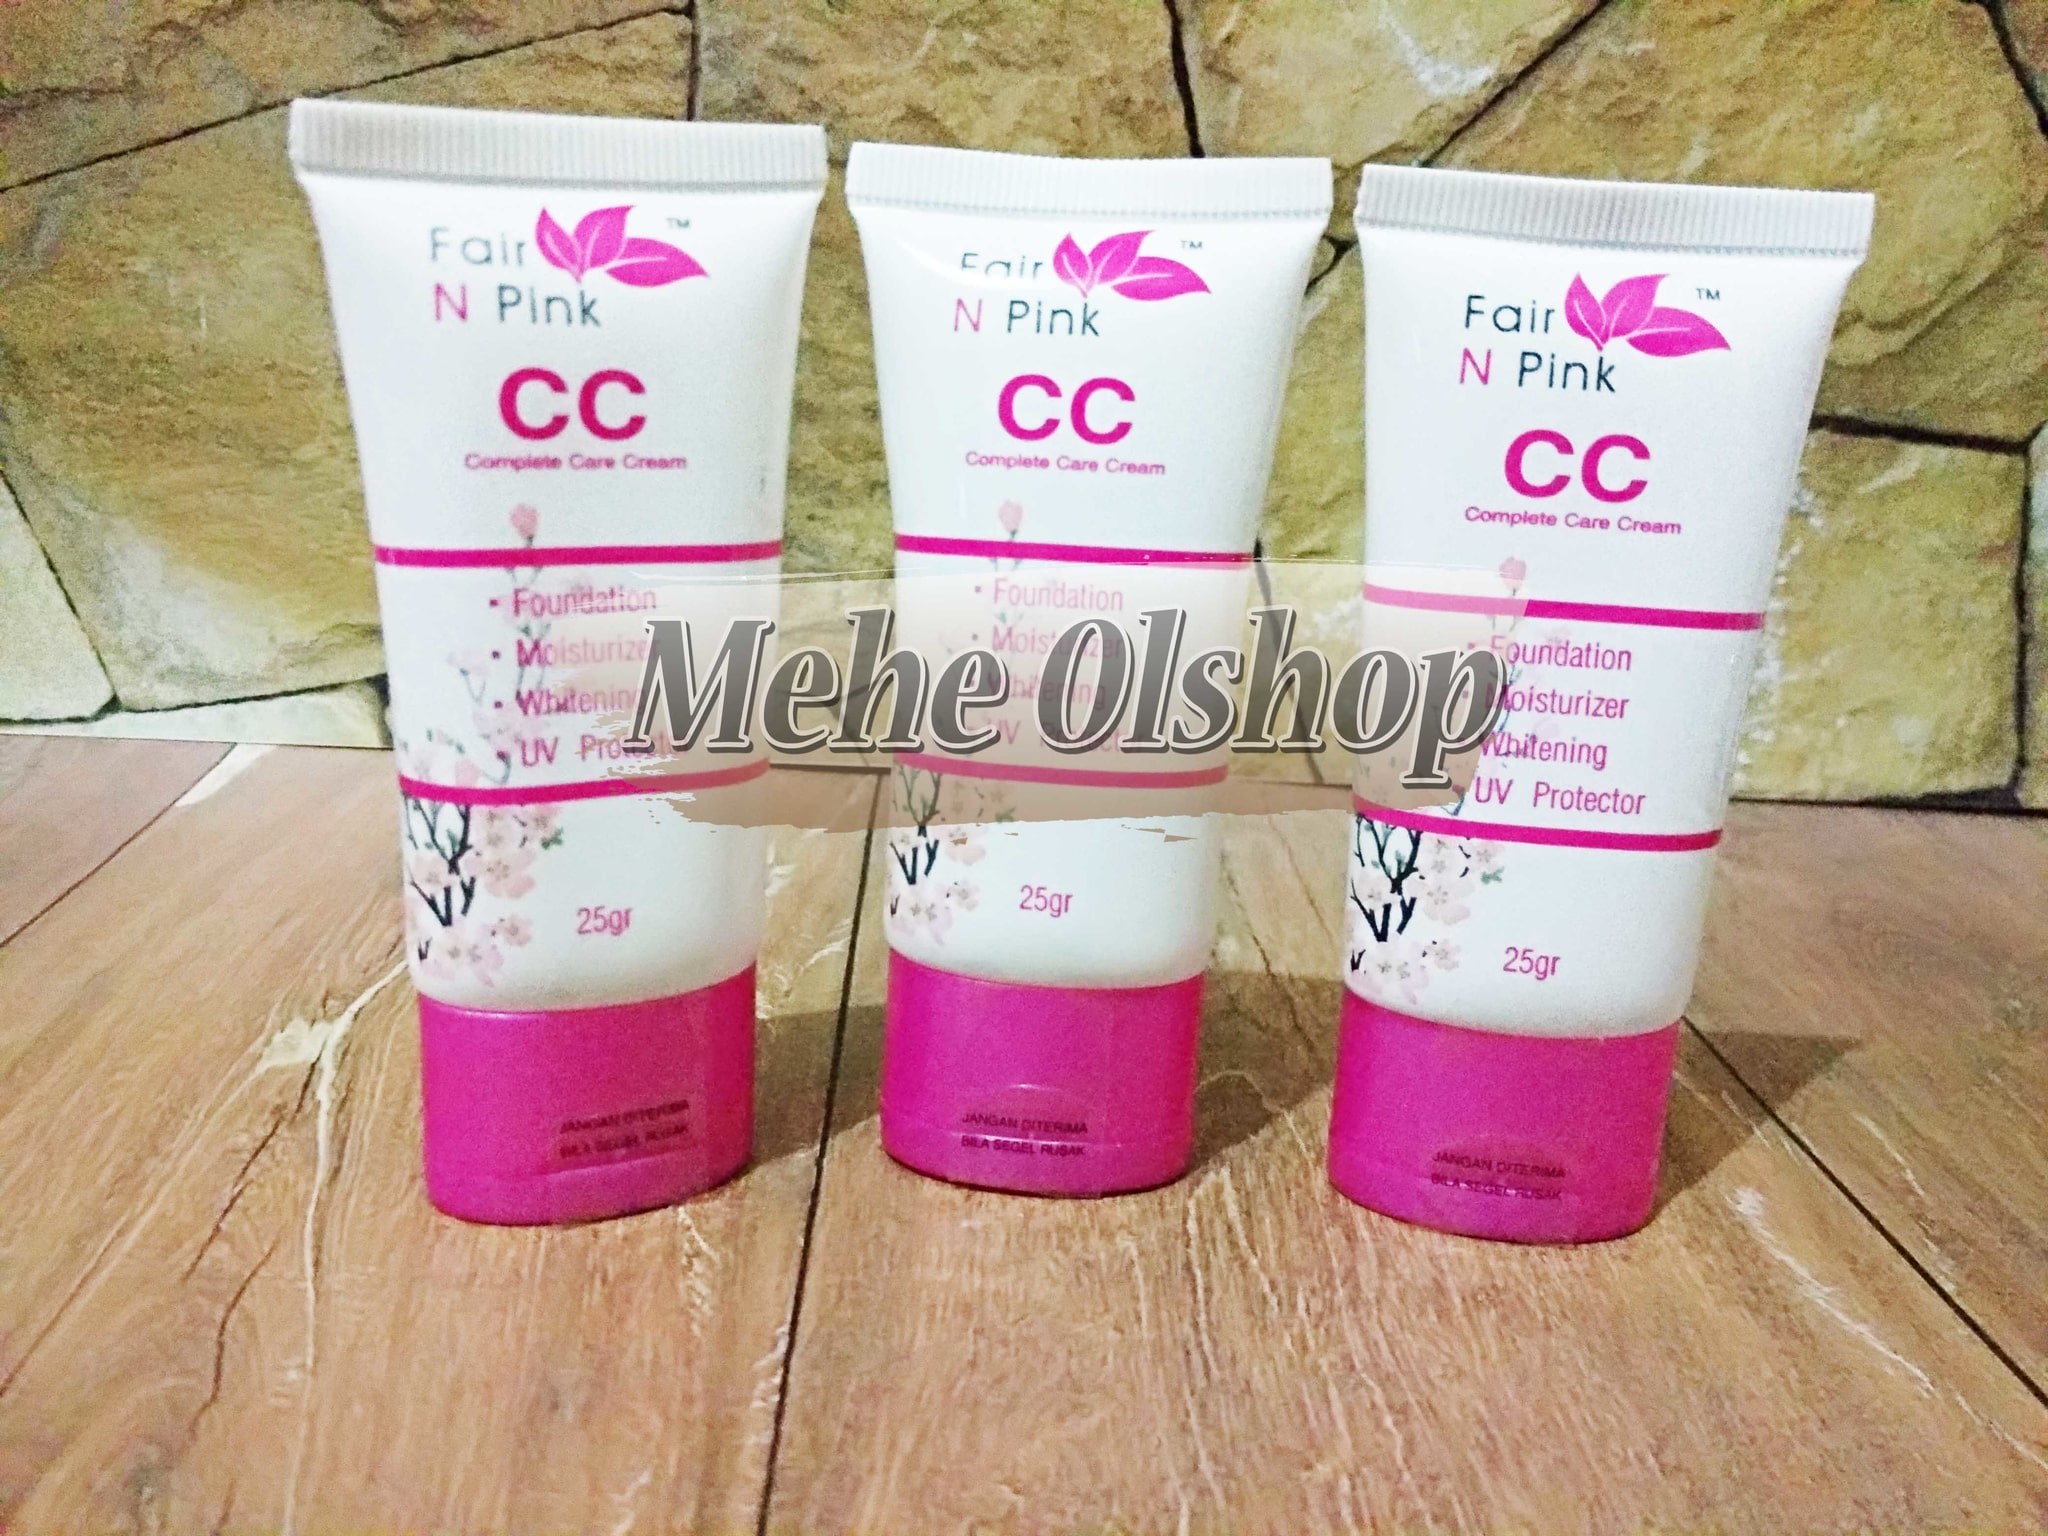 Jual Fair N Pink Cc Complete Care Cream 25gr Original Mehe Foundation Moisturizer Whitening Uv Protector Olshop Tokopedia